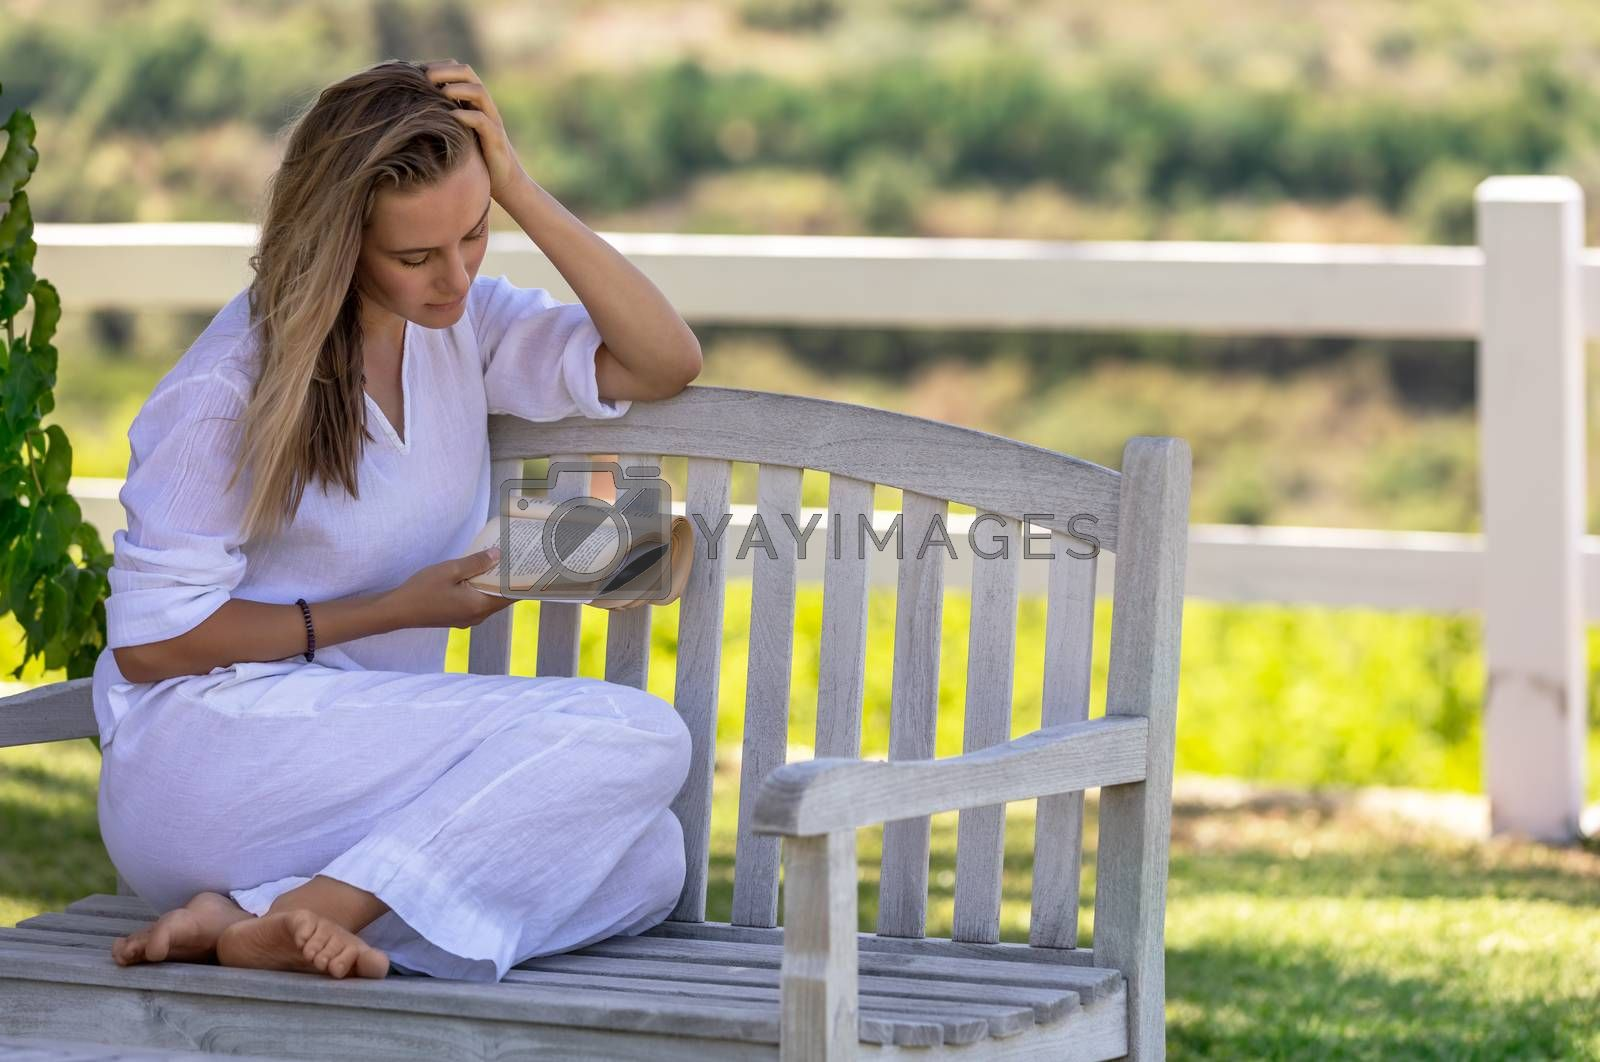 Beautiful Young Woman Sitting on the Bench in the Park and Reading a Book. Spending Nice Summer Day with Good Story. Peace and Relaxation Concept.